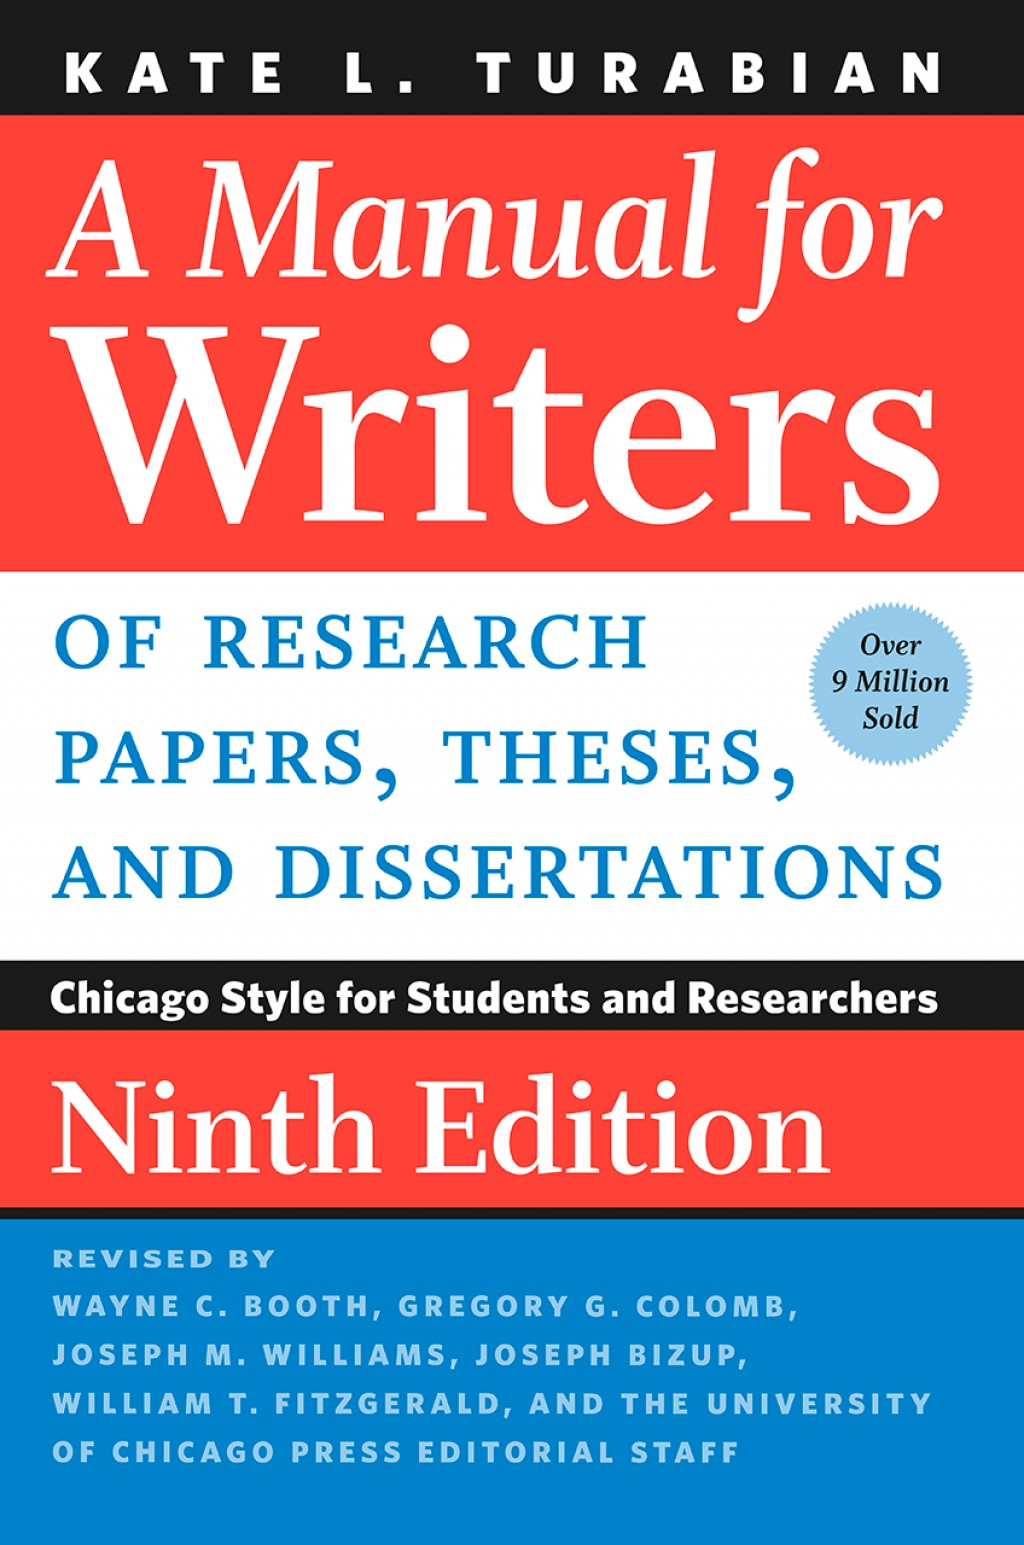 001 Research Paper Manual For Writers Of Papers Theses And Dissertations Amazing A Turabian Pdf Large